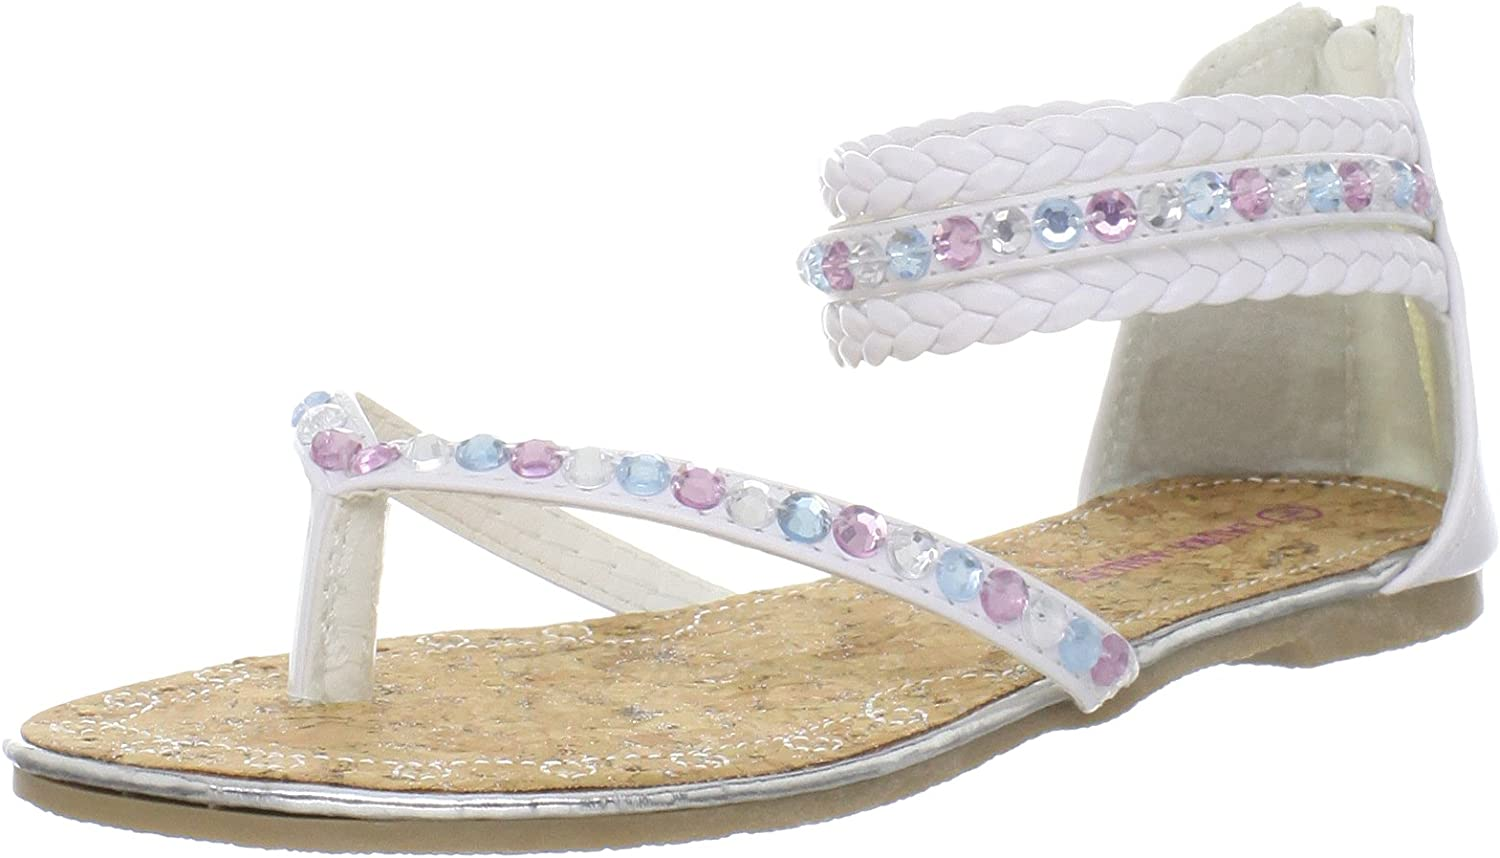 Laura Max 79% OFF Ashley LA20016 Thong Little Toddler Kid Sandal Recommended